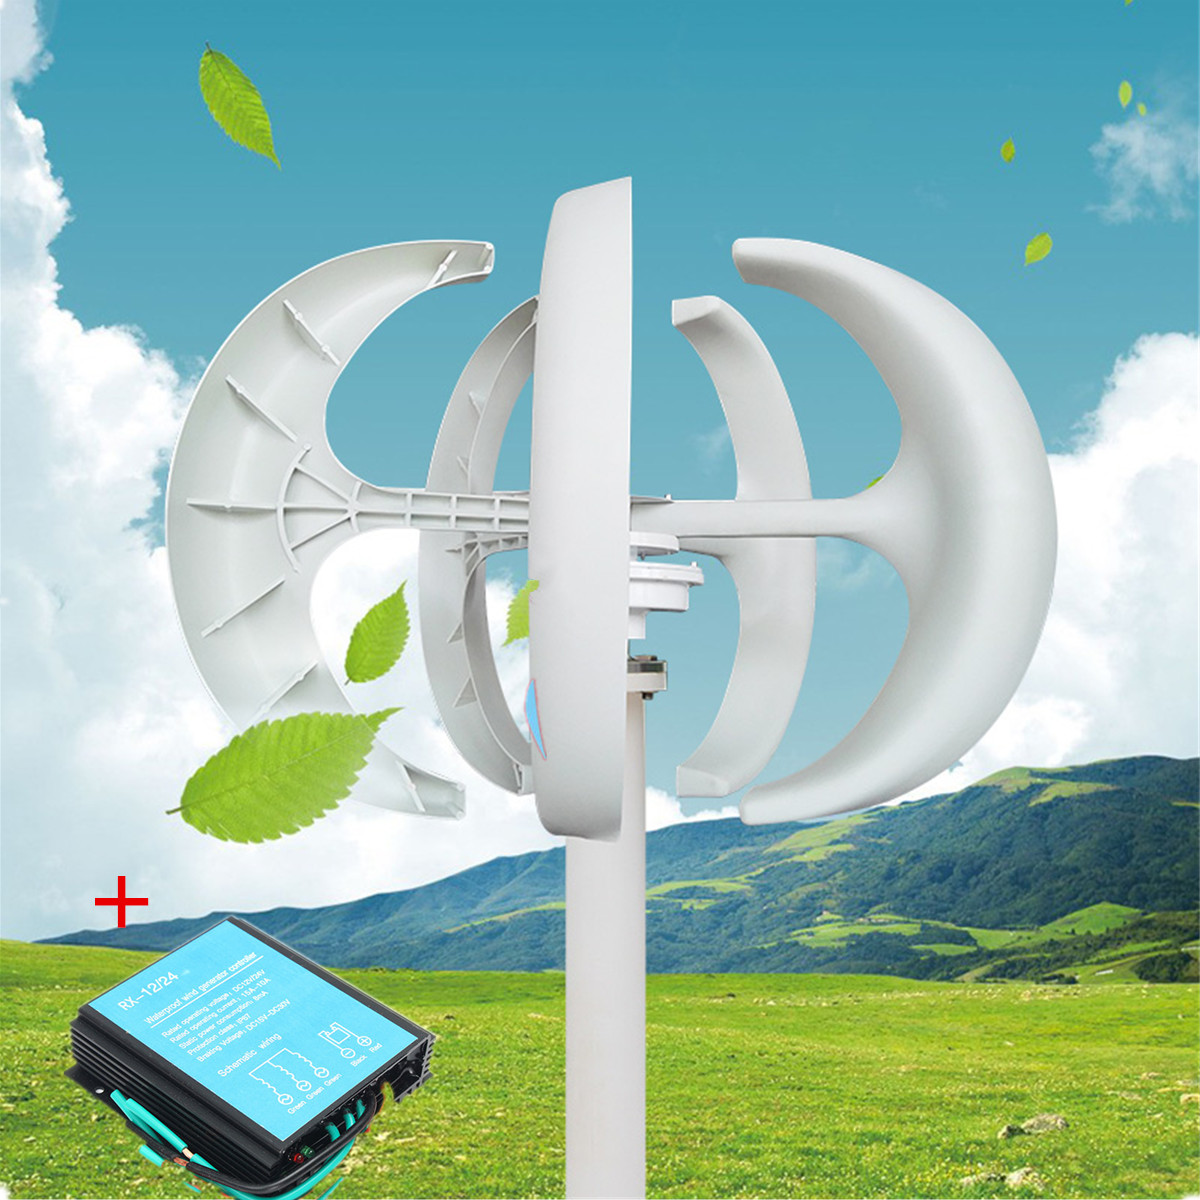 100W to 400W 12 24V Vertical Axis Wind Turbine Generator VAWT Boat Garden with Controller